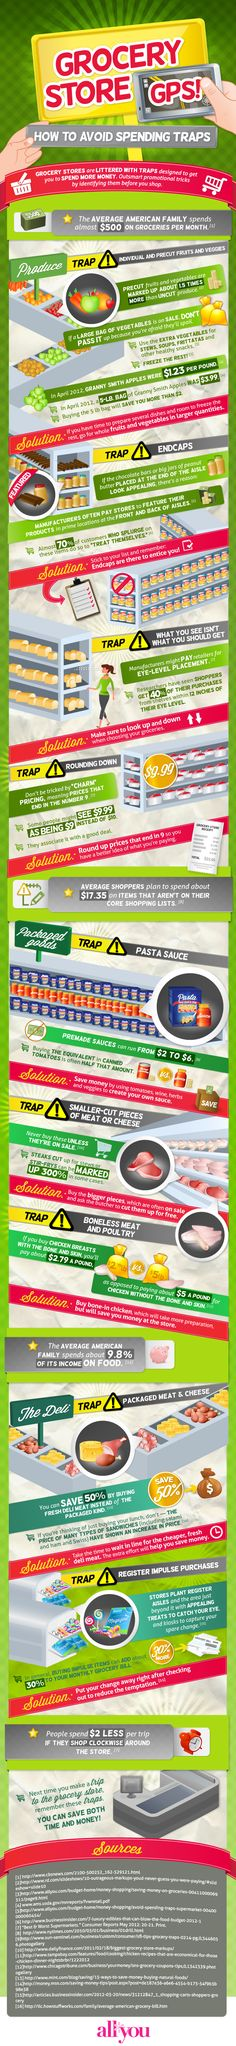 allyou.com infographic: Save Money on Groceries: Avoid Spending Traps at the Store